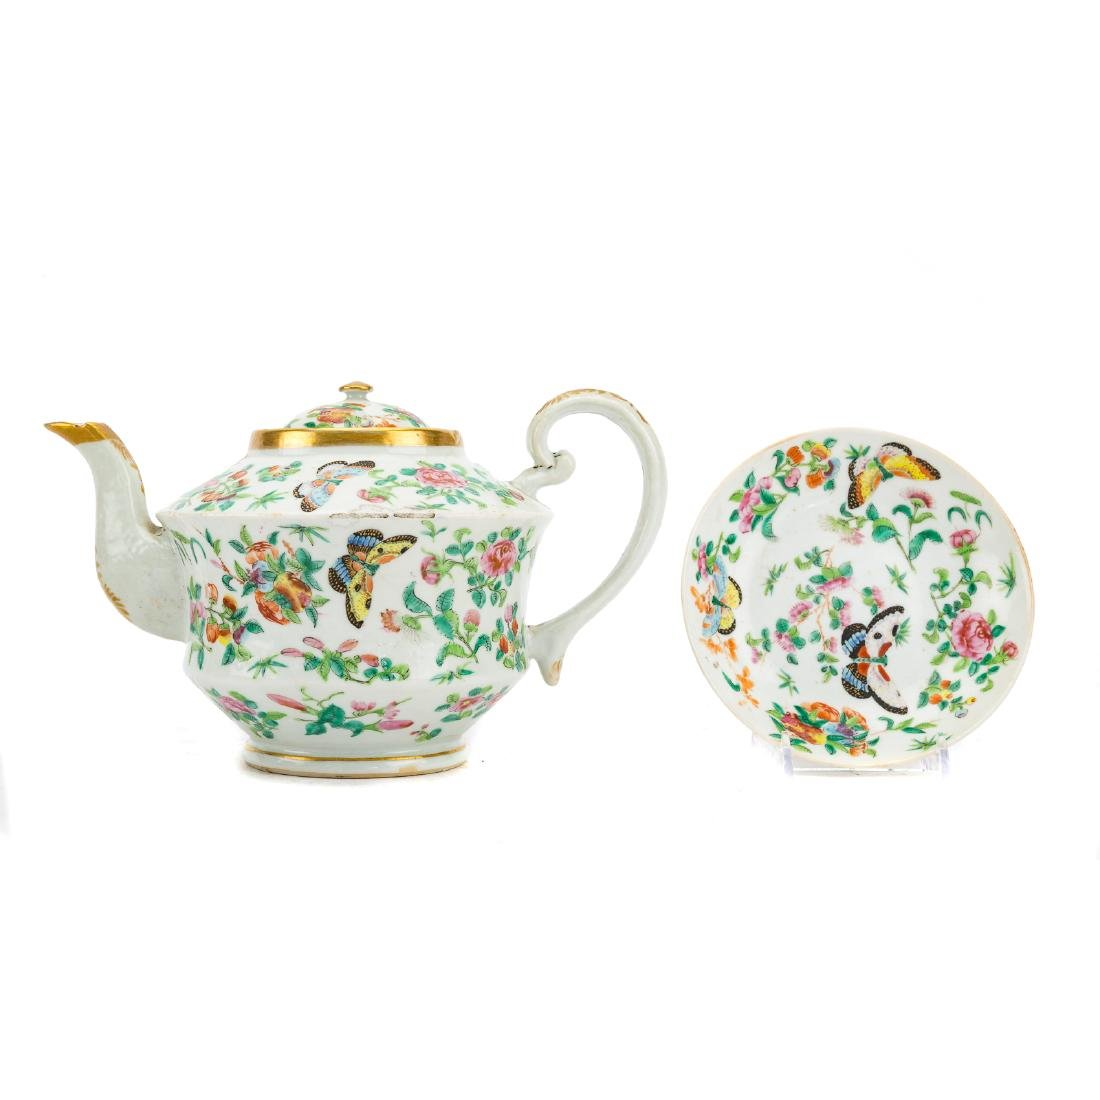 13-piece Chinese Export Famille Rose tea set - 2